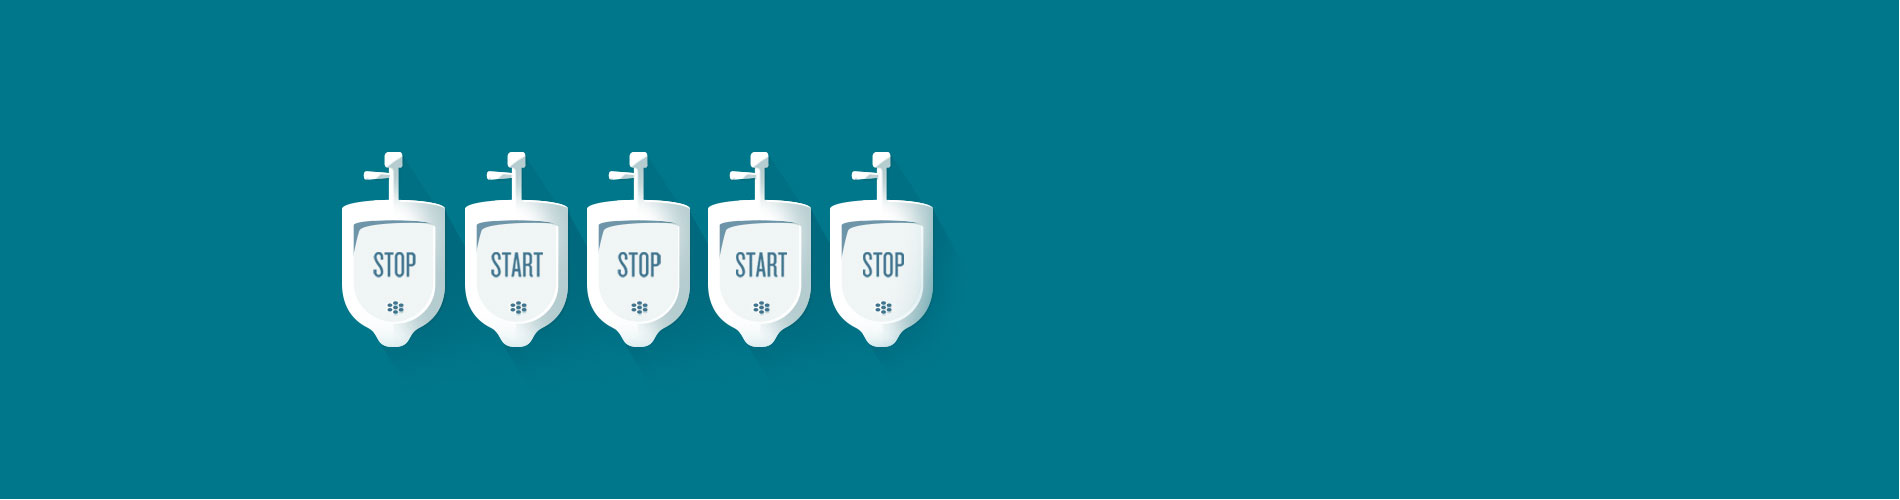 "Illustration of urinals with alternating text of ""Start"" and ""Stop"""